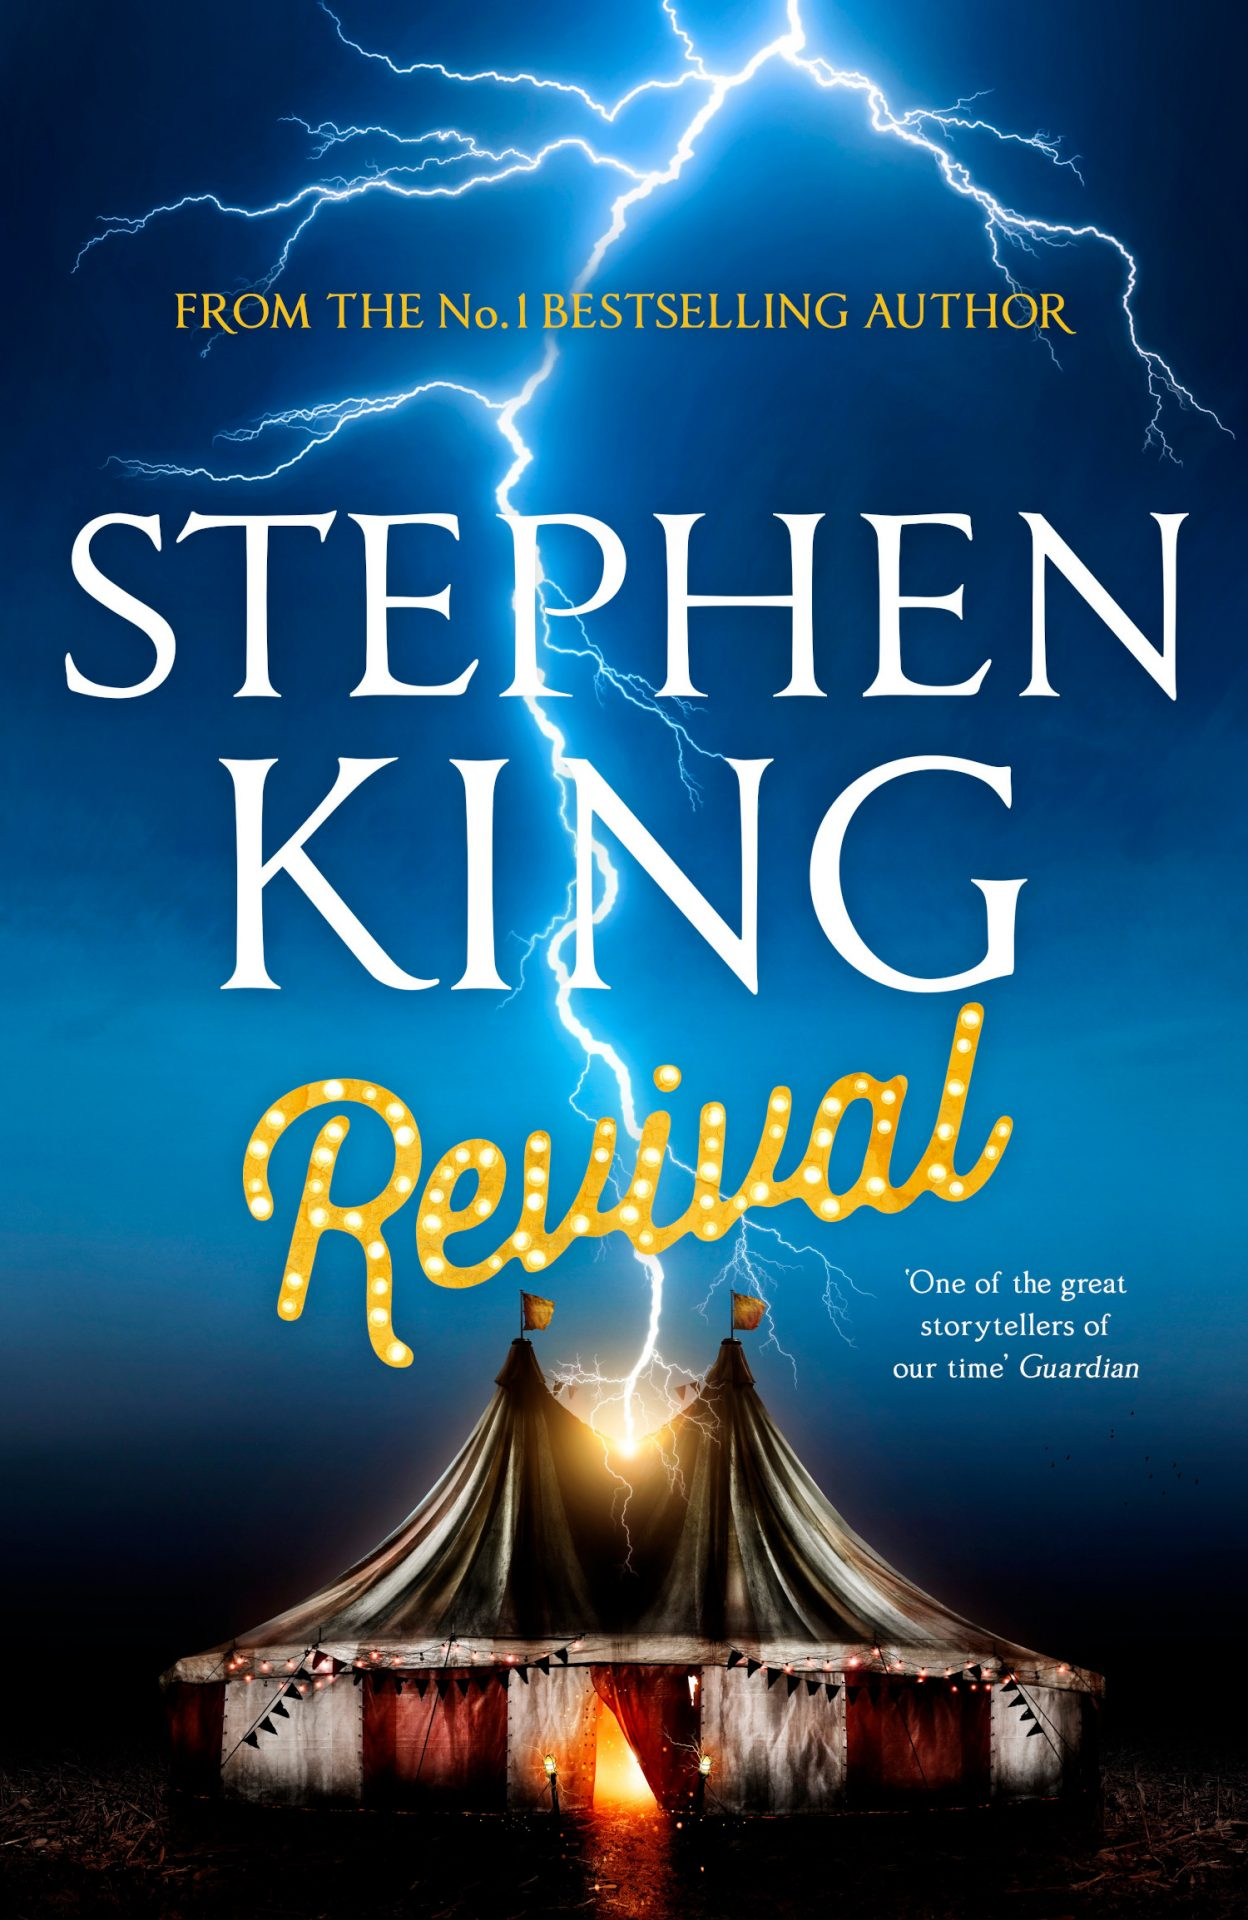 Stephen King's revival book cover